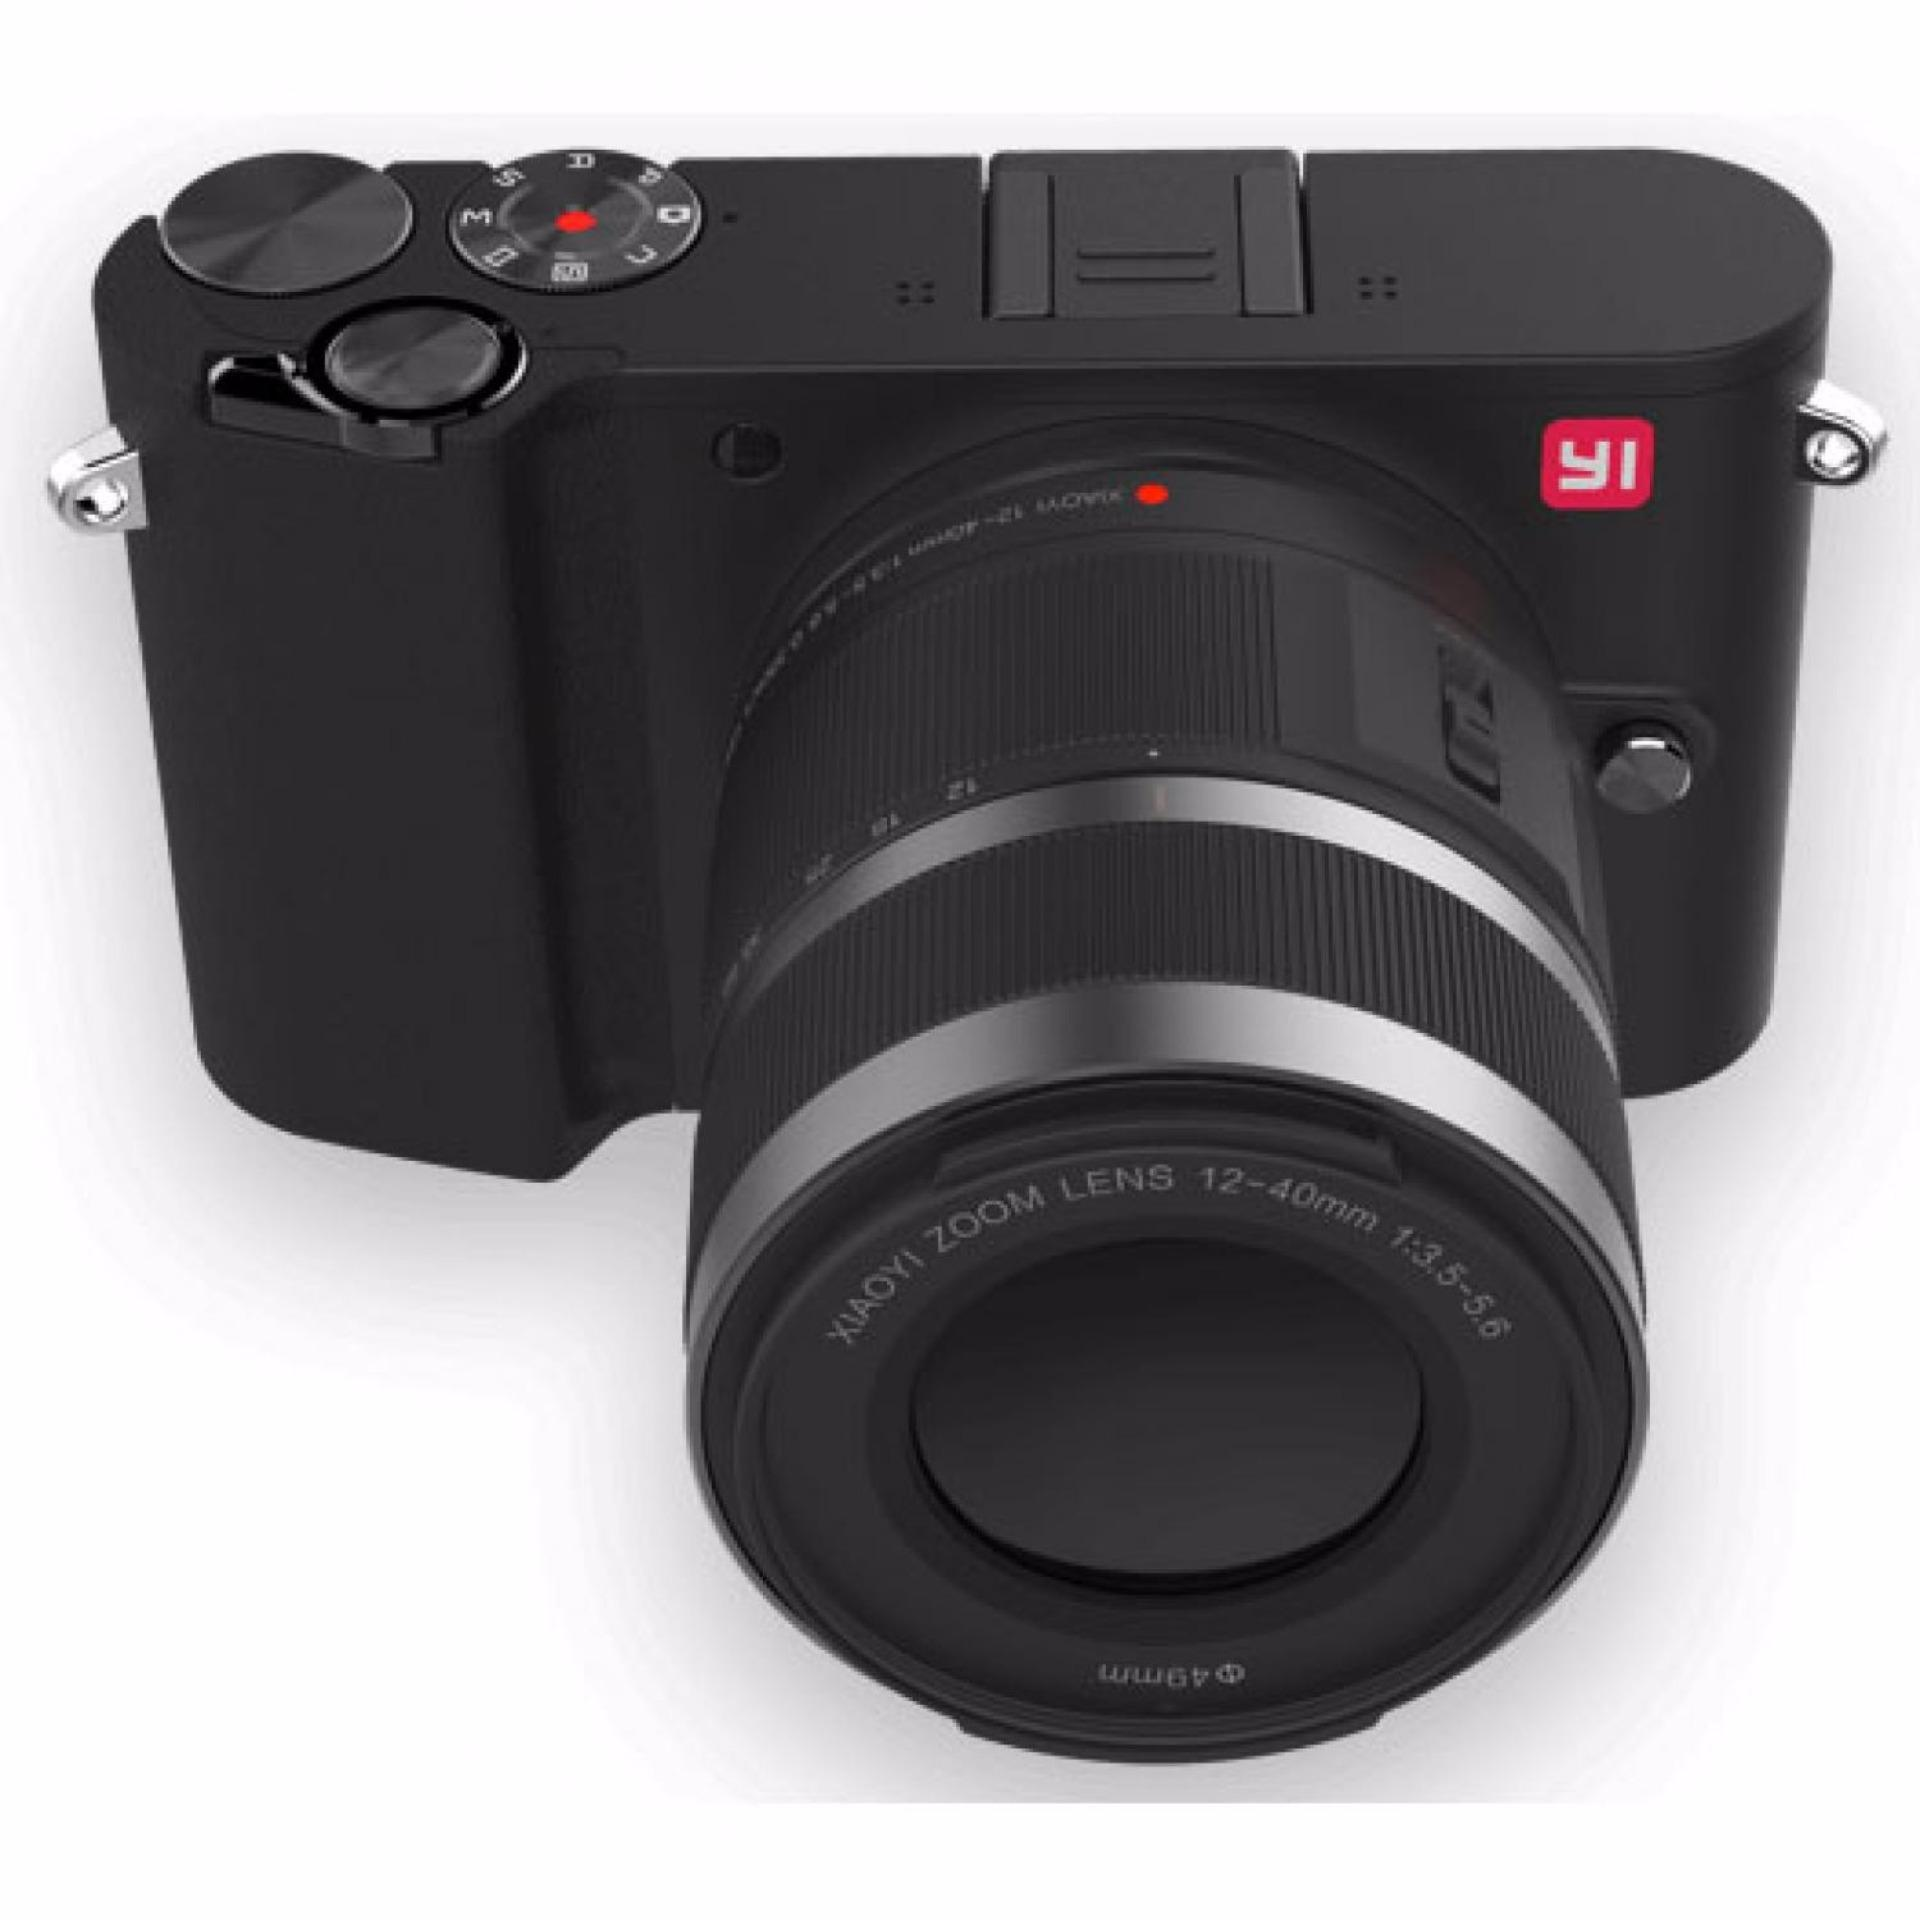 Spesifikasi Xiaomi Yi M1 Mirrorless Digital Camera 12 40Mm F3 5 5 6 Lens Yg Baik